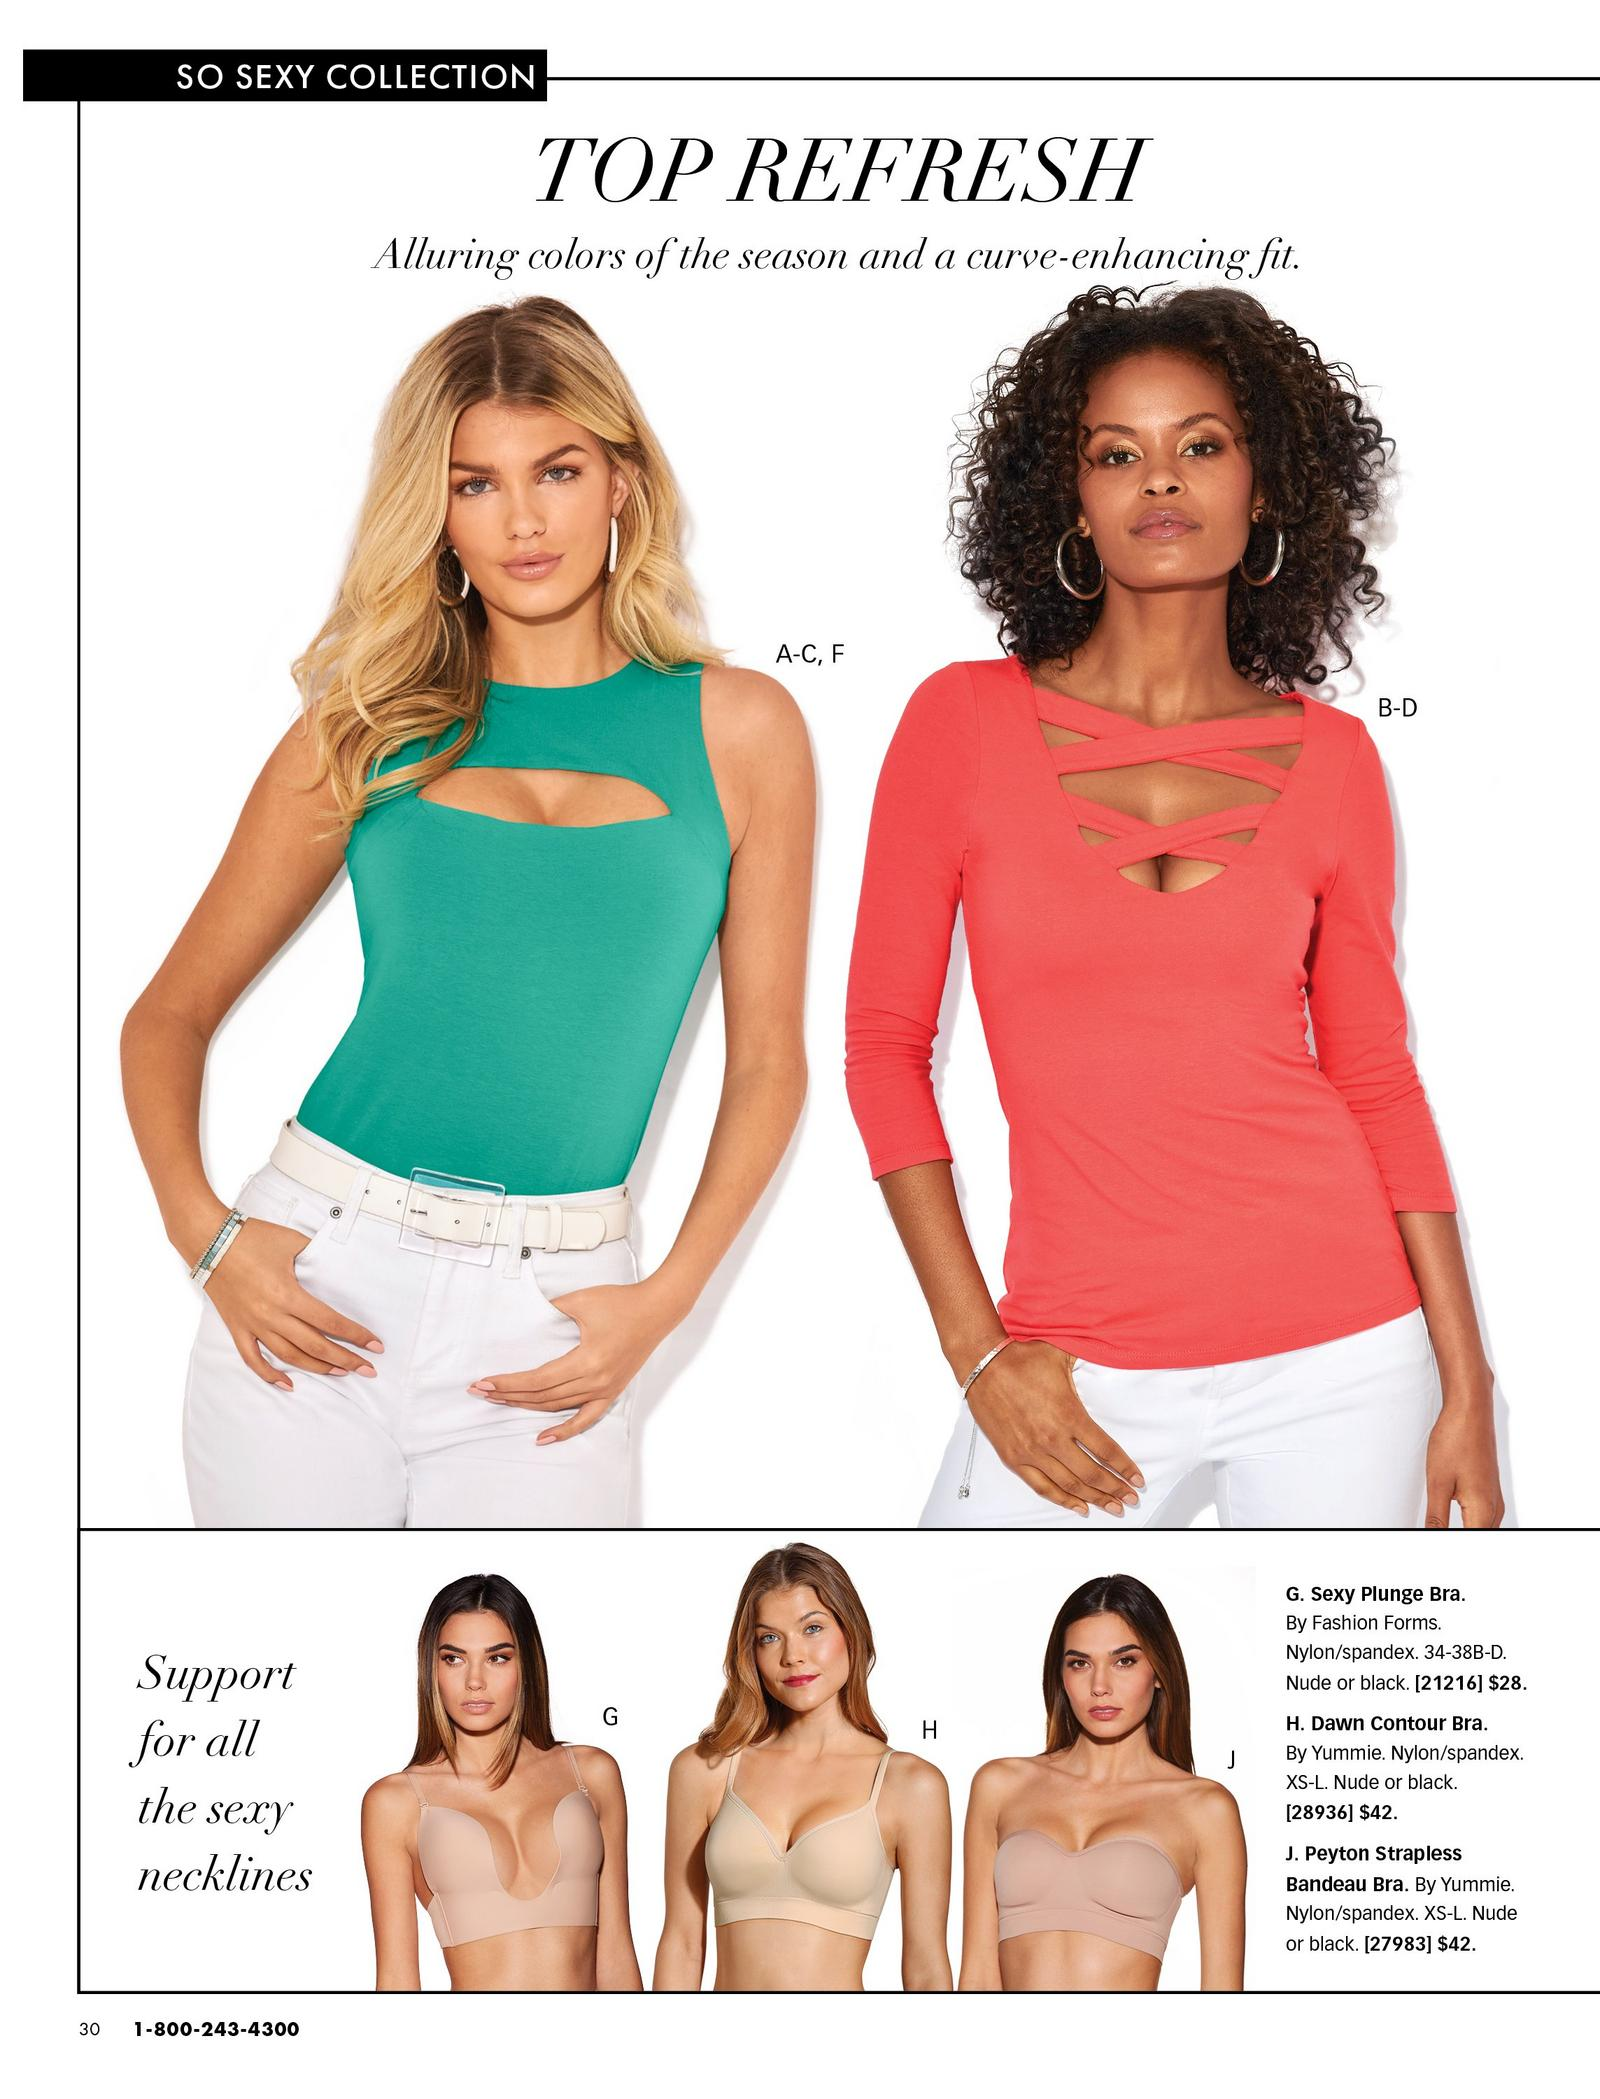 left model wearing a green cutout sleeveless top, white belt, and white jeans. right model wearing a coral cutout three-quarter sleeve top and white jeans. bottom models wearing three styles of a nude bra.